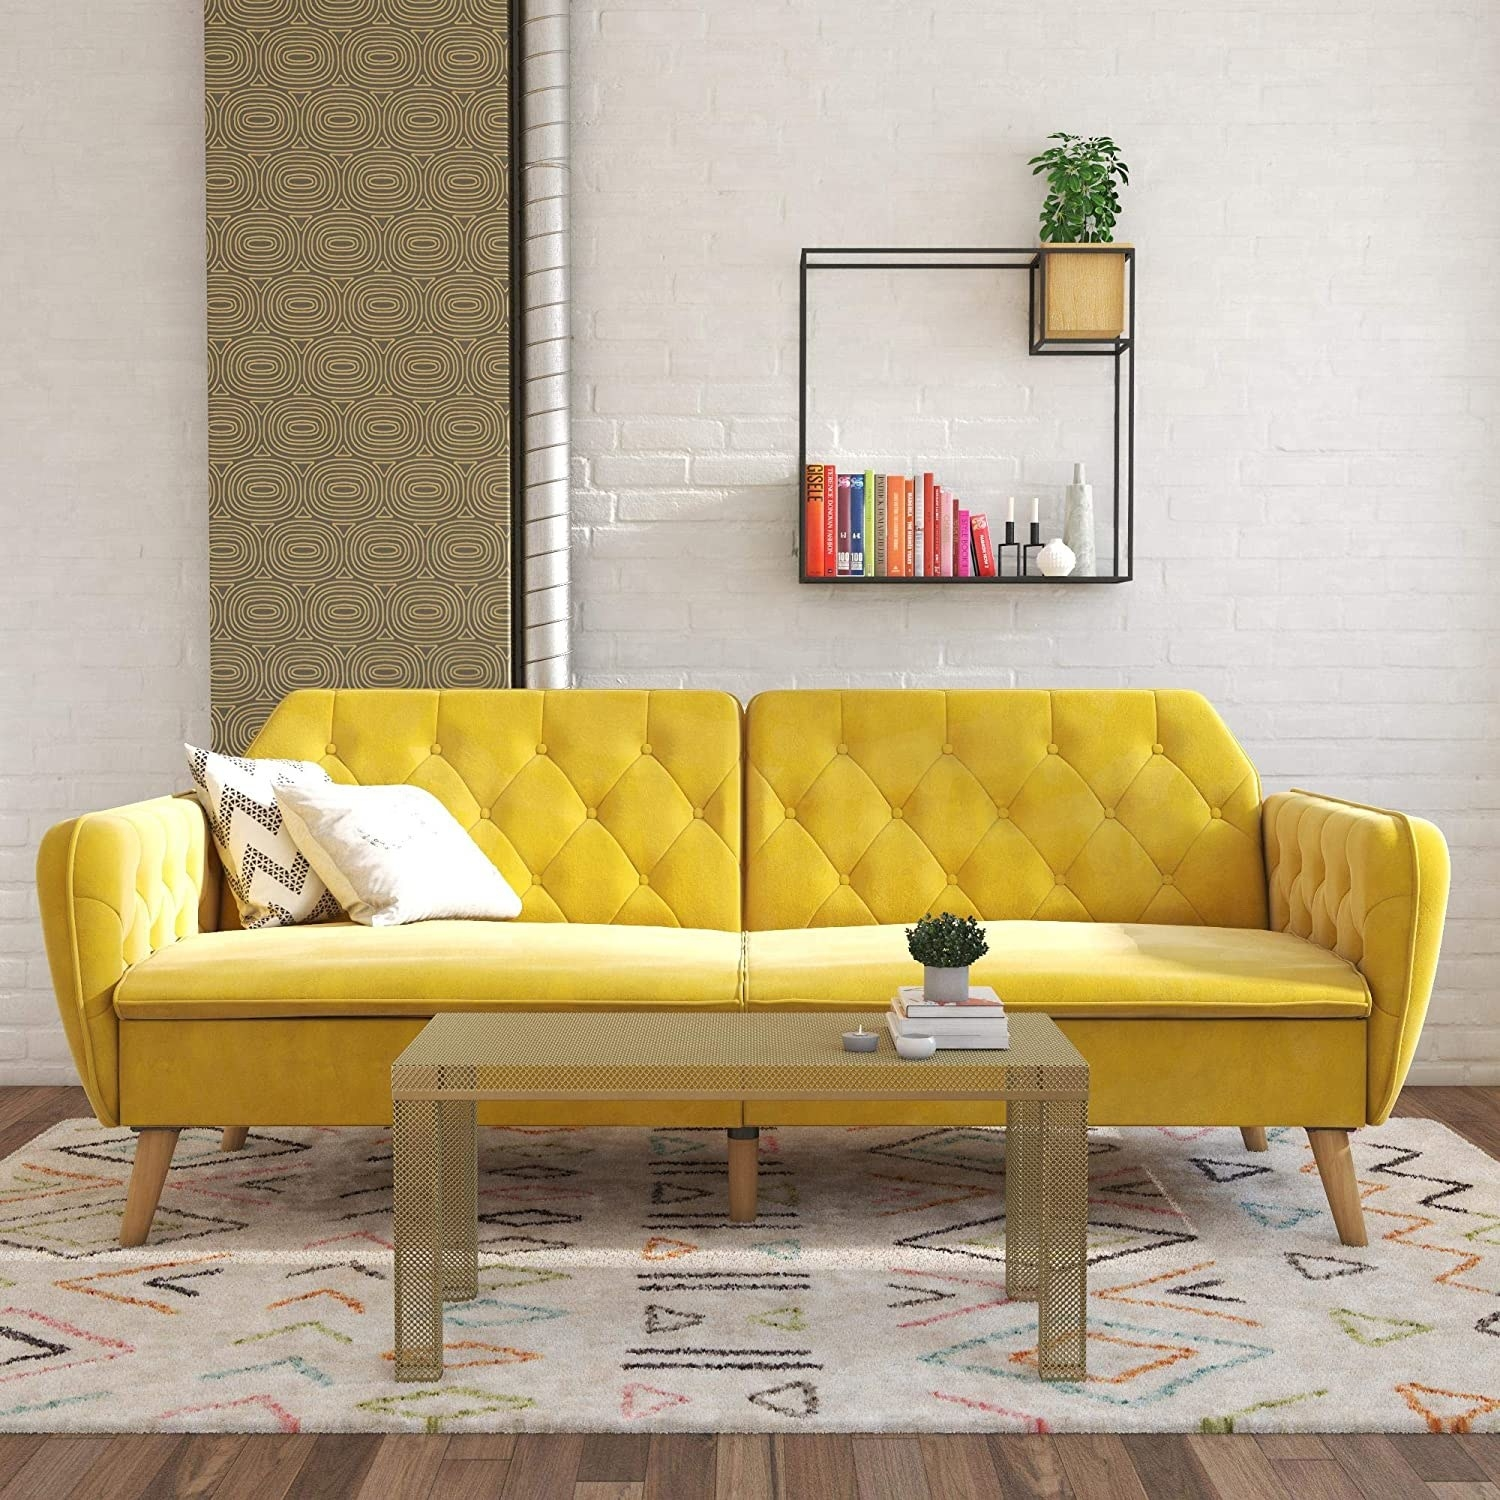 a yellow velvet couch with a tufted back